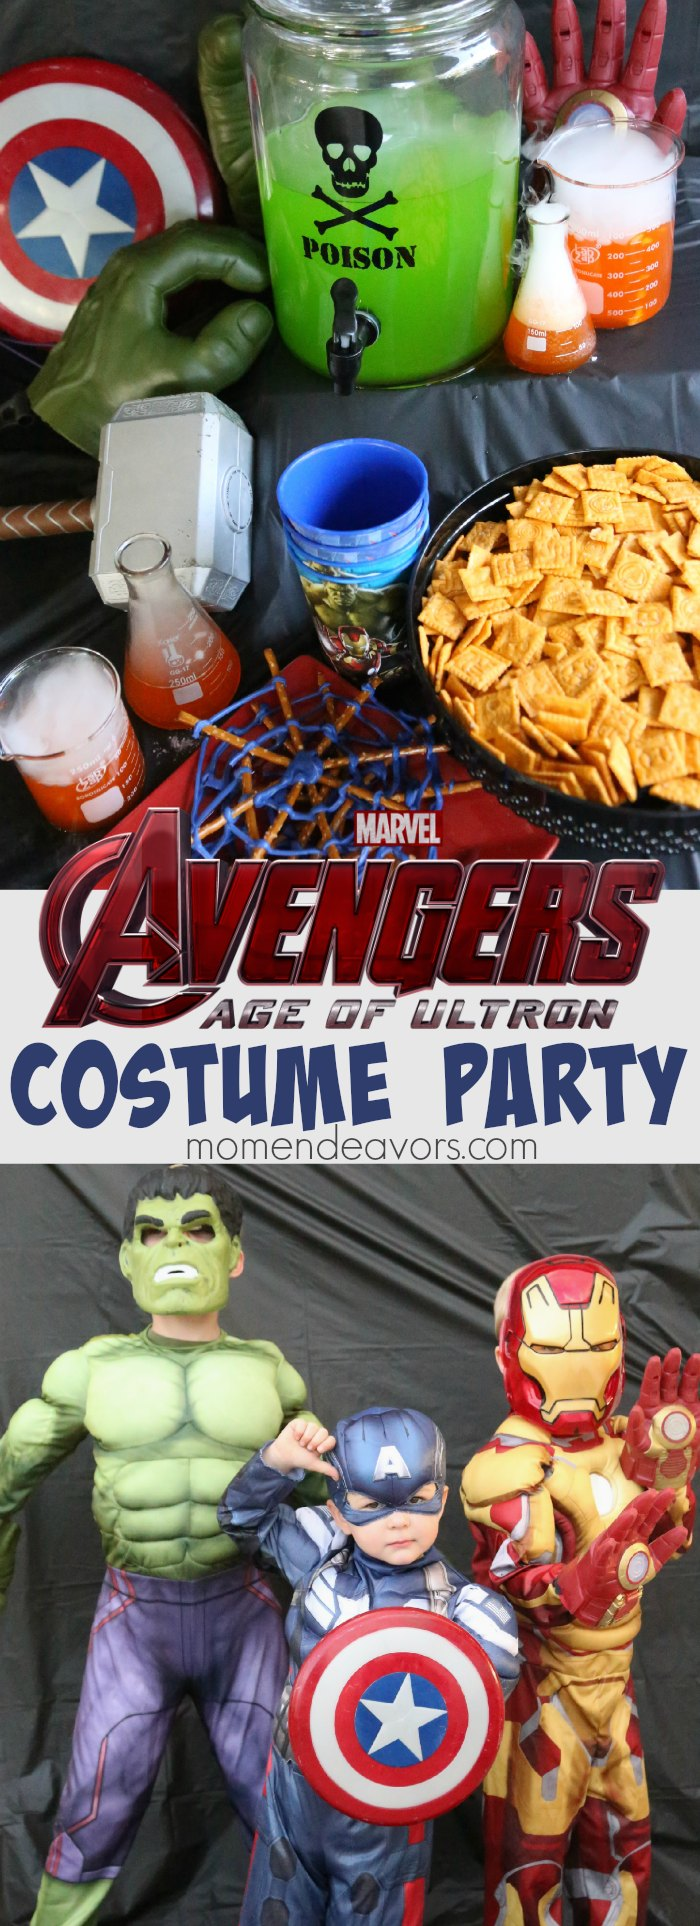 Avengers Costume Party